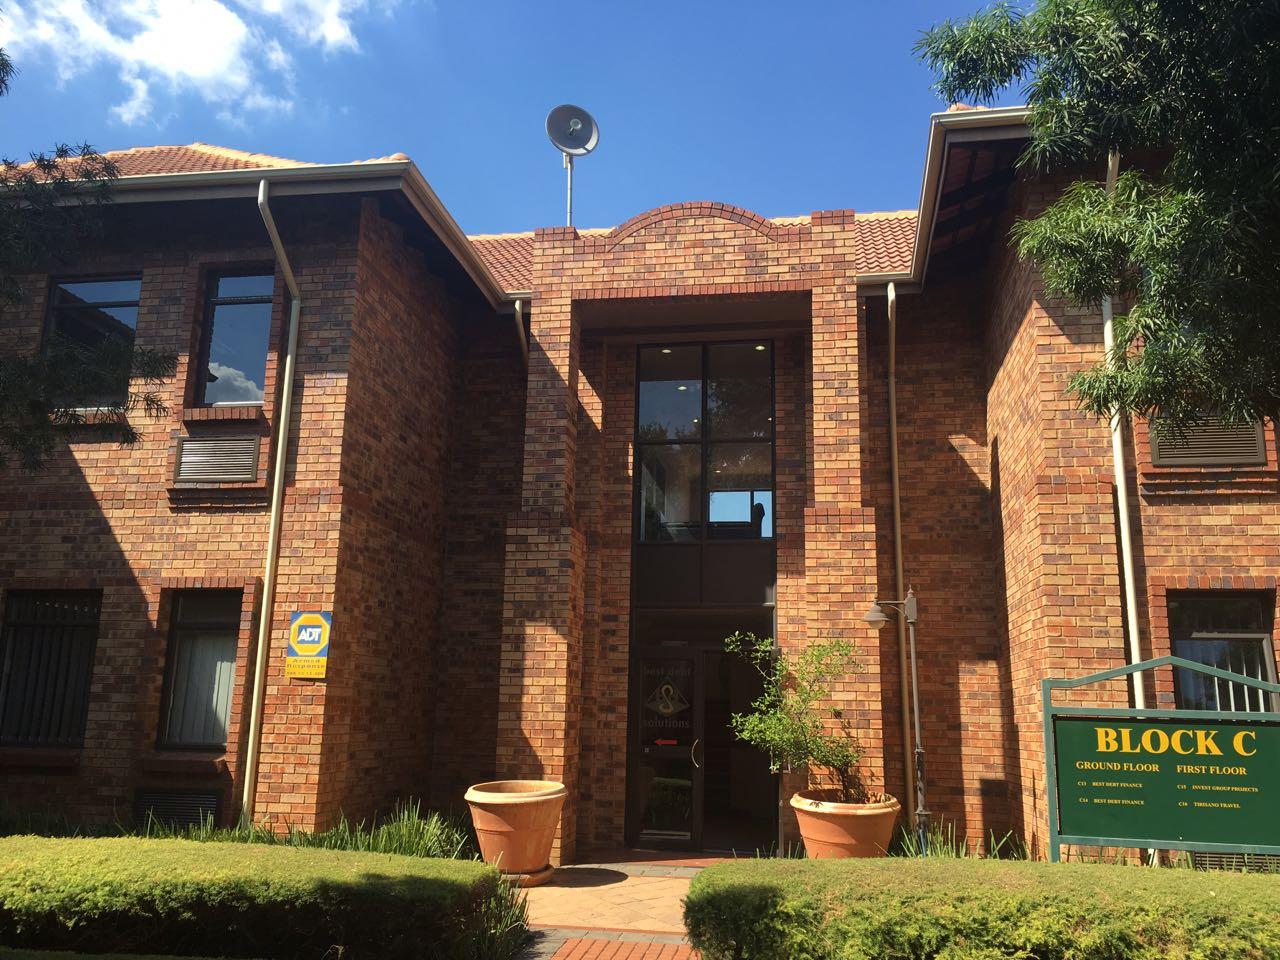 PRIME OFFICES SPACE FOR SALE WATERFORT COURT, CENTURION!